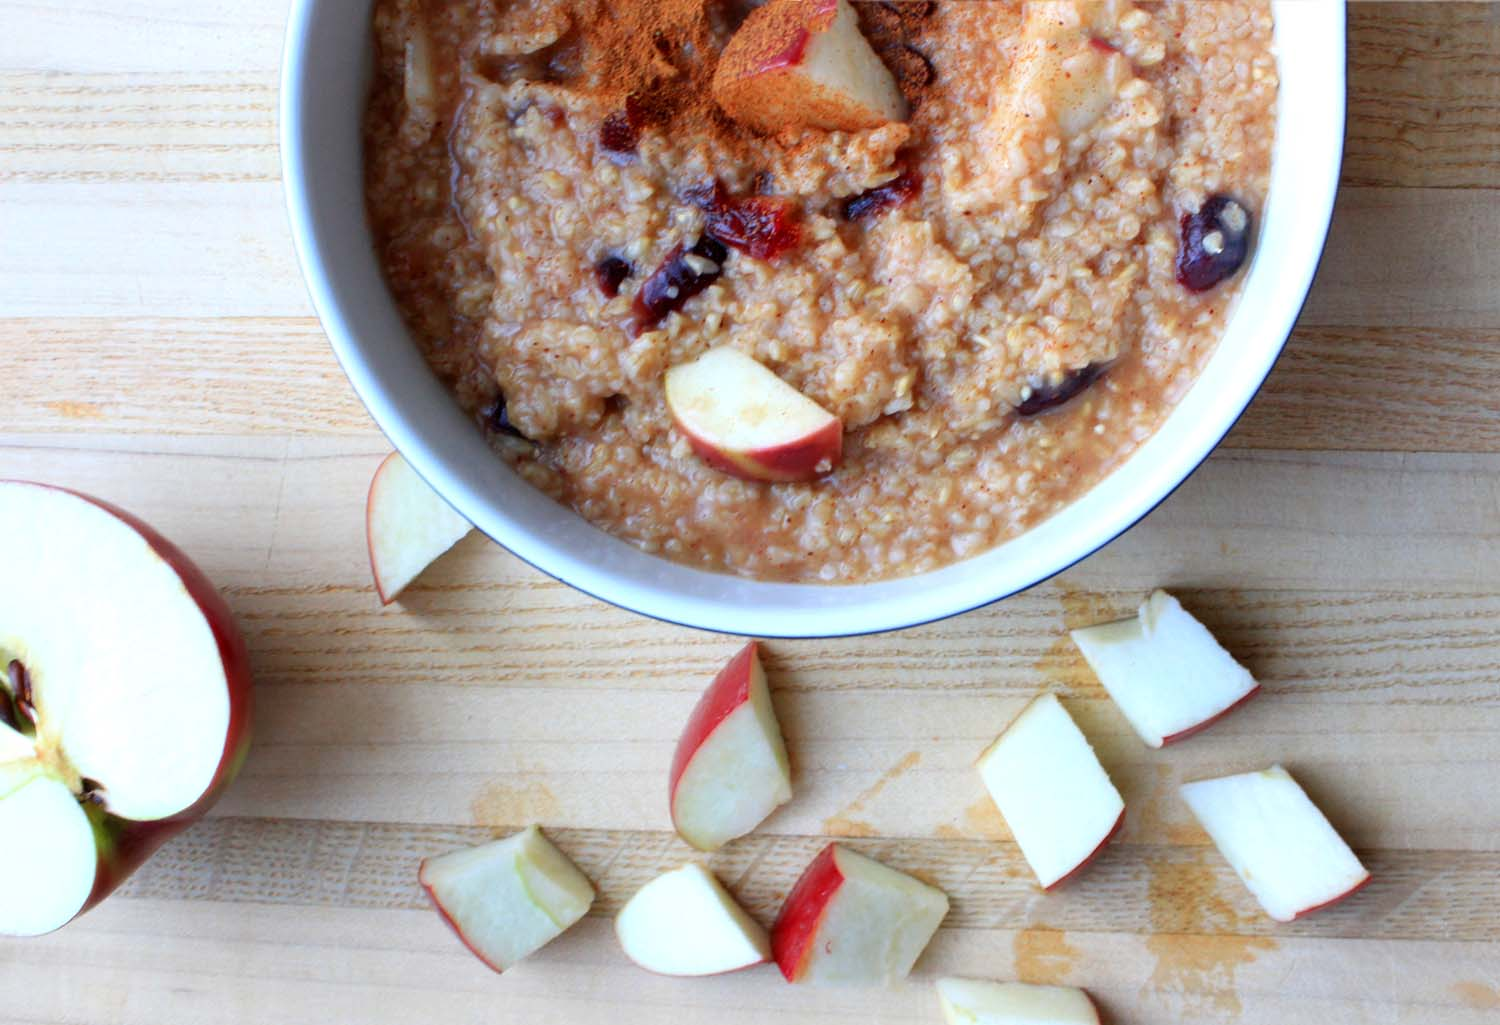 Cranberry Apple Steel-cut Oatmeal   Image:  Laura Messersmith